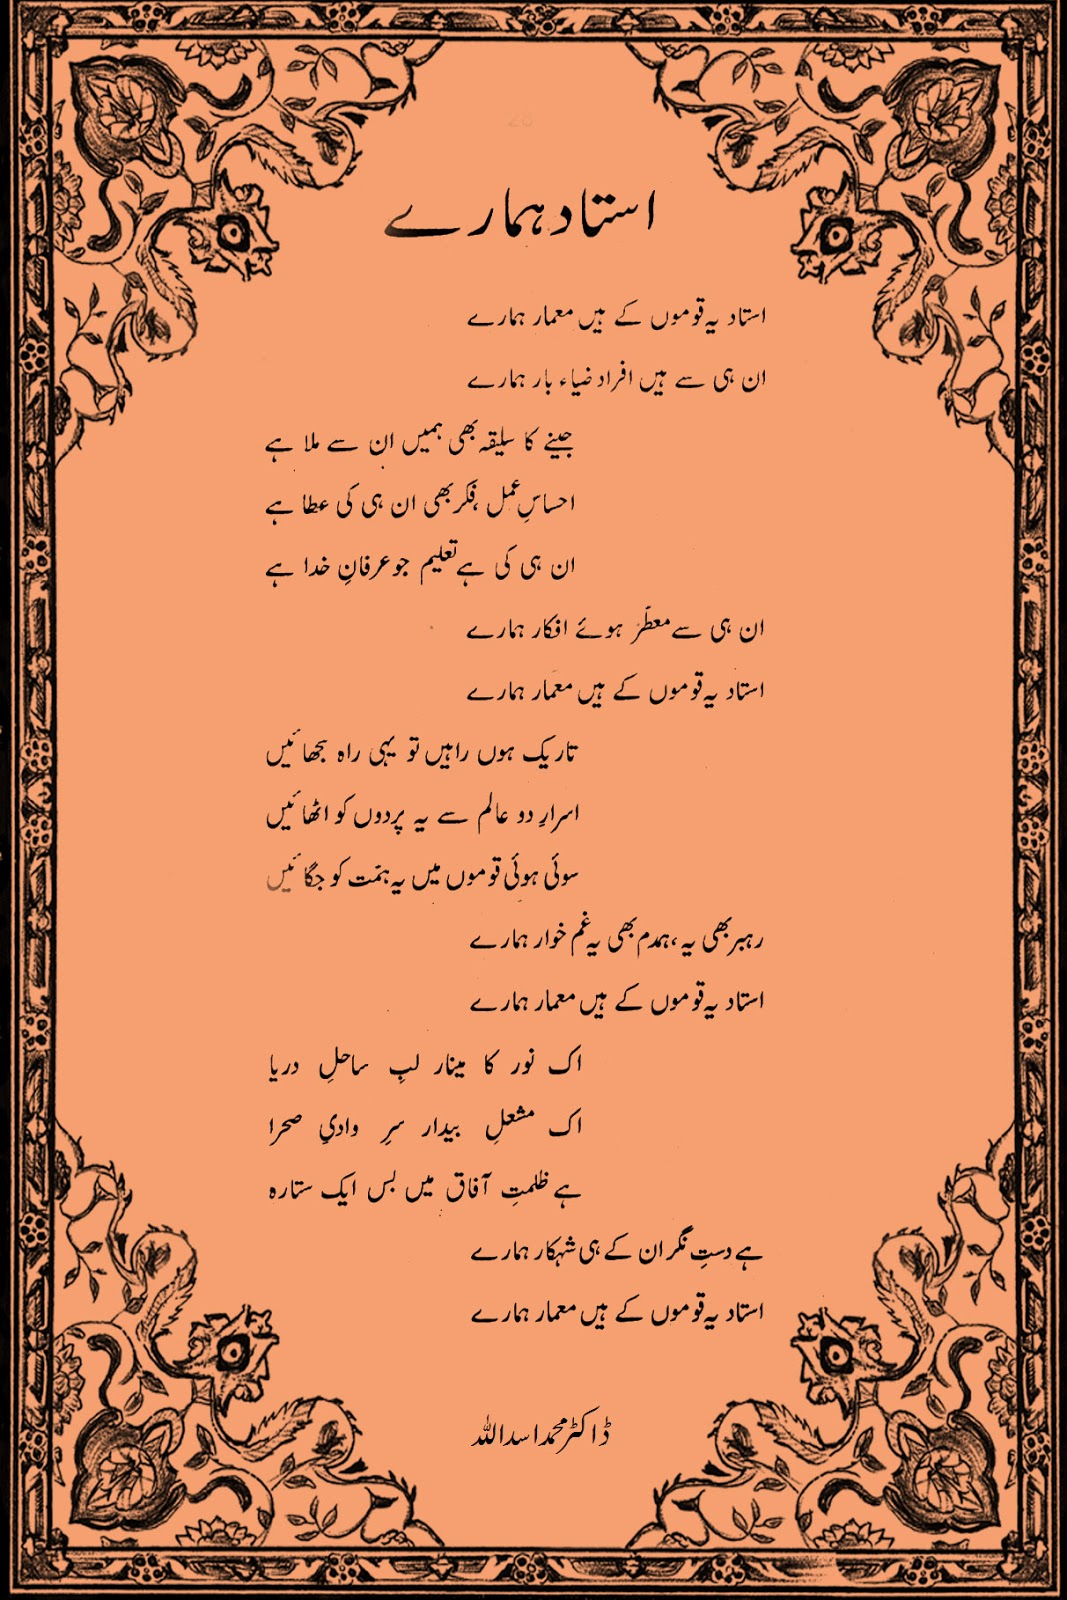 Pay for writing urdu poetry